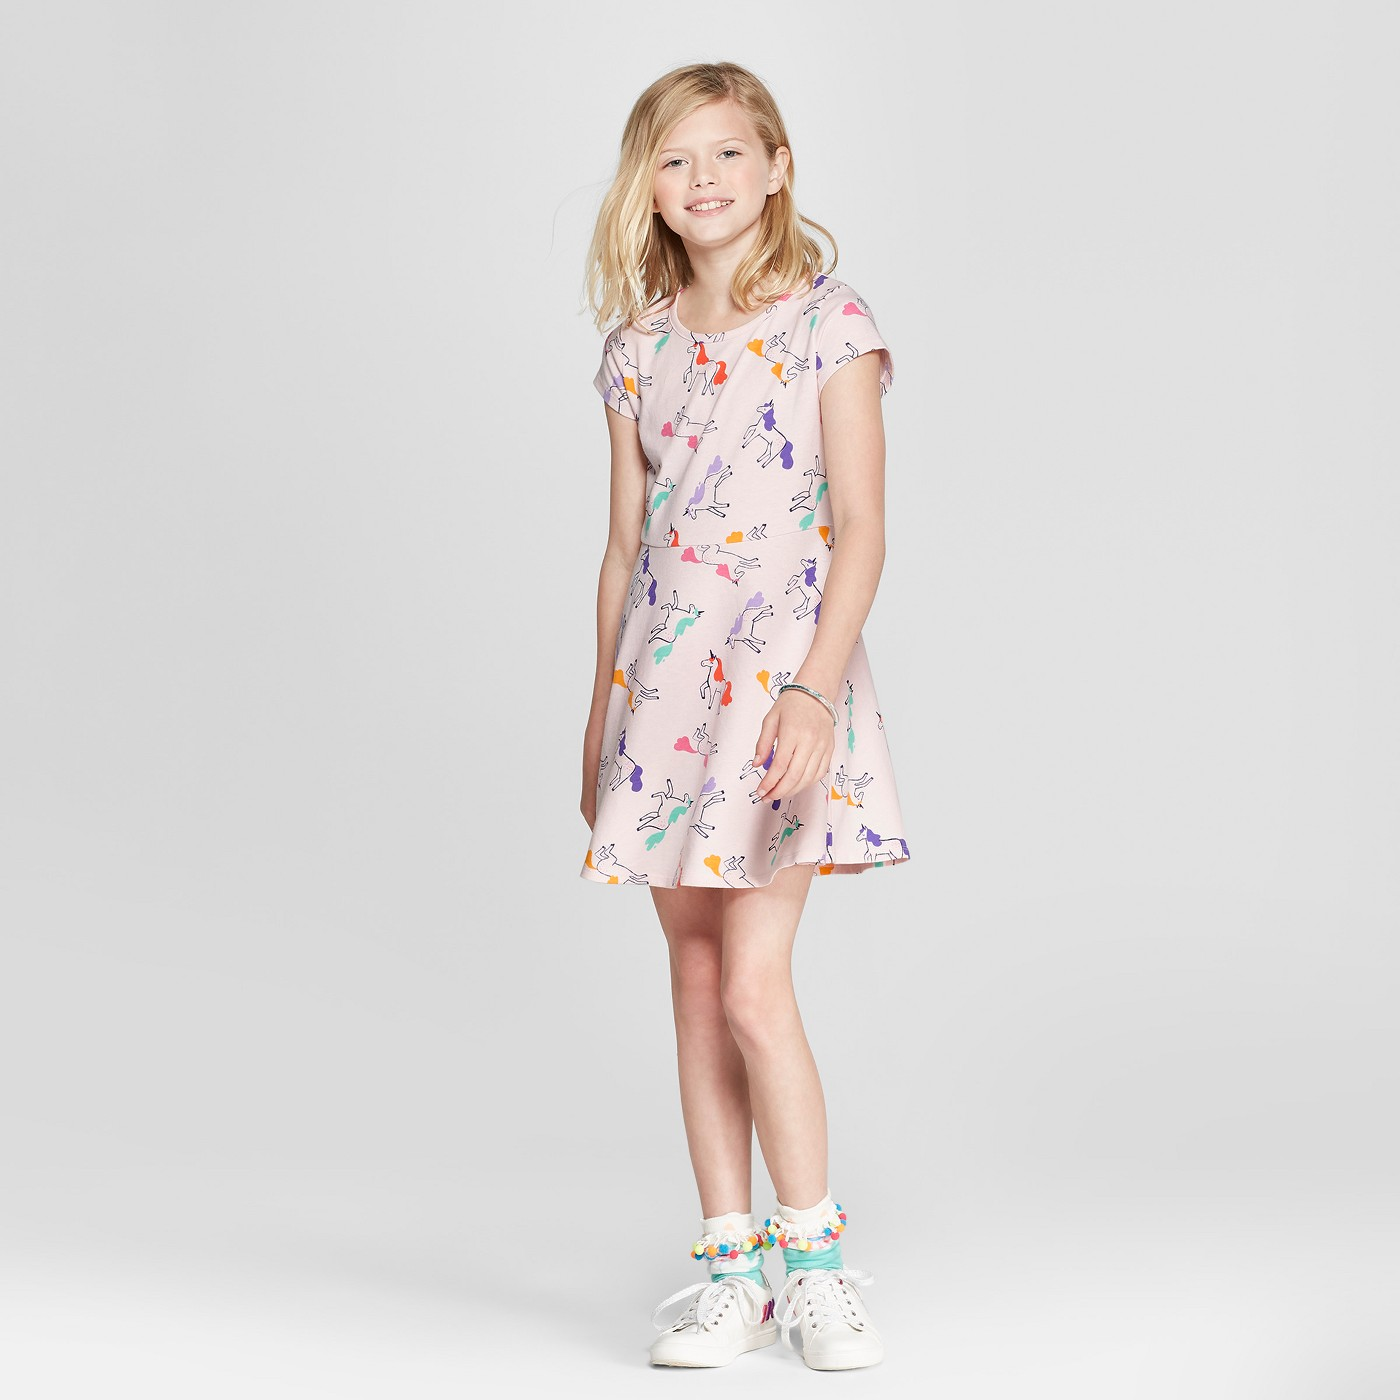 Girls' Unicorn Jersey Dress - $8